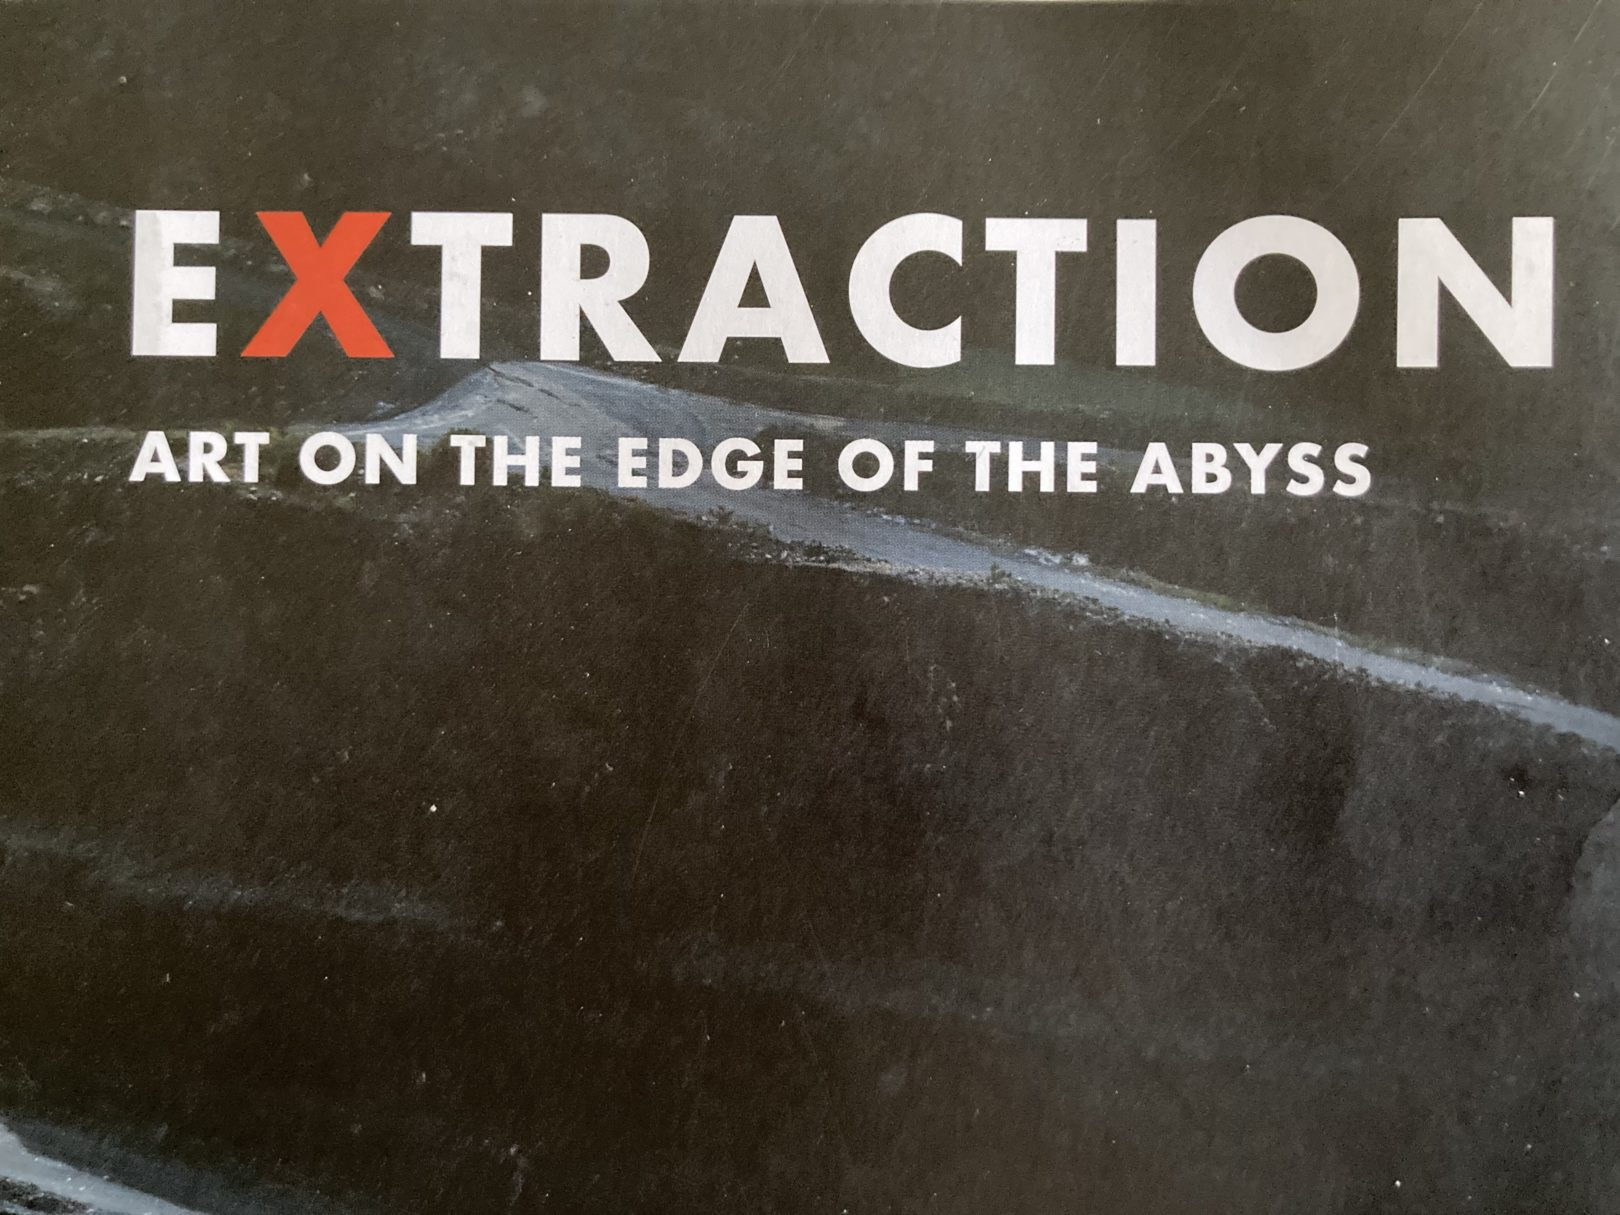 Extraction Art on the Edge of teh Abyss